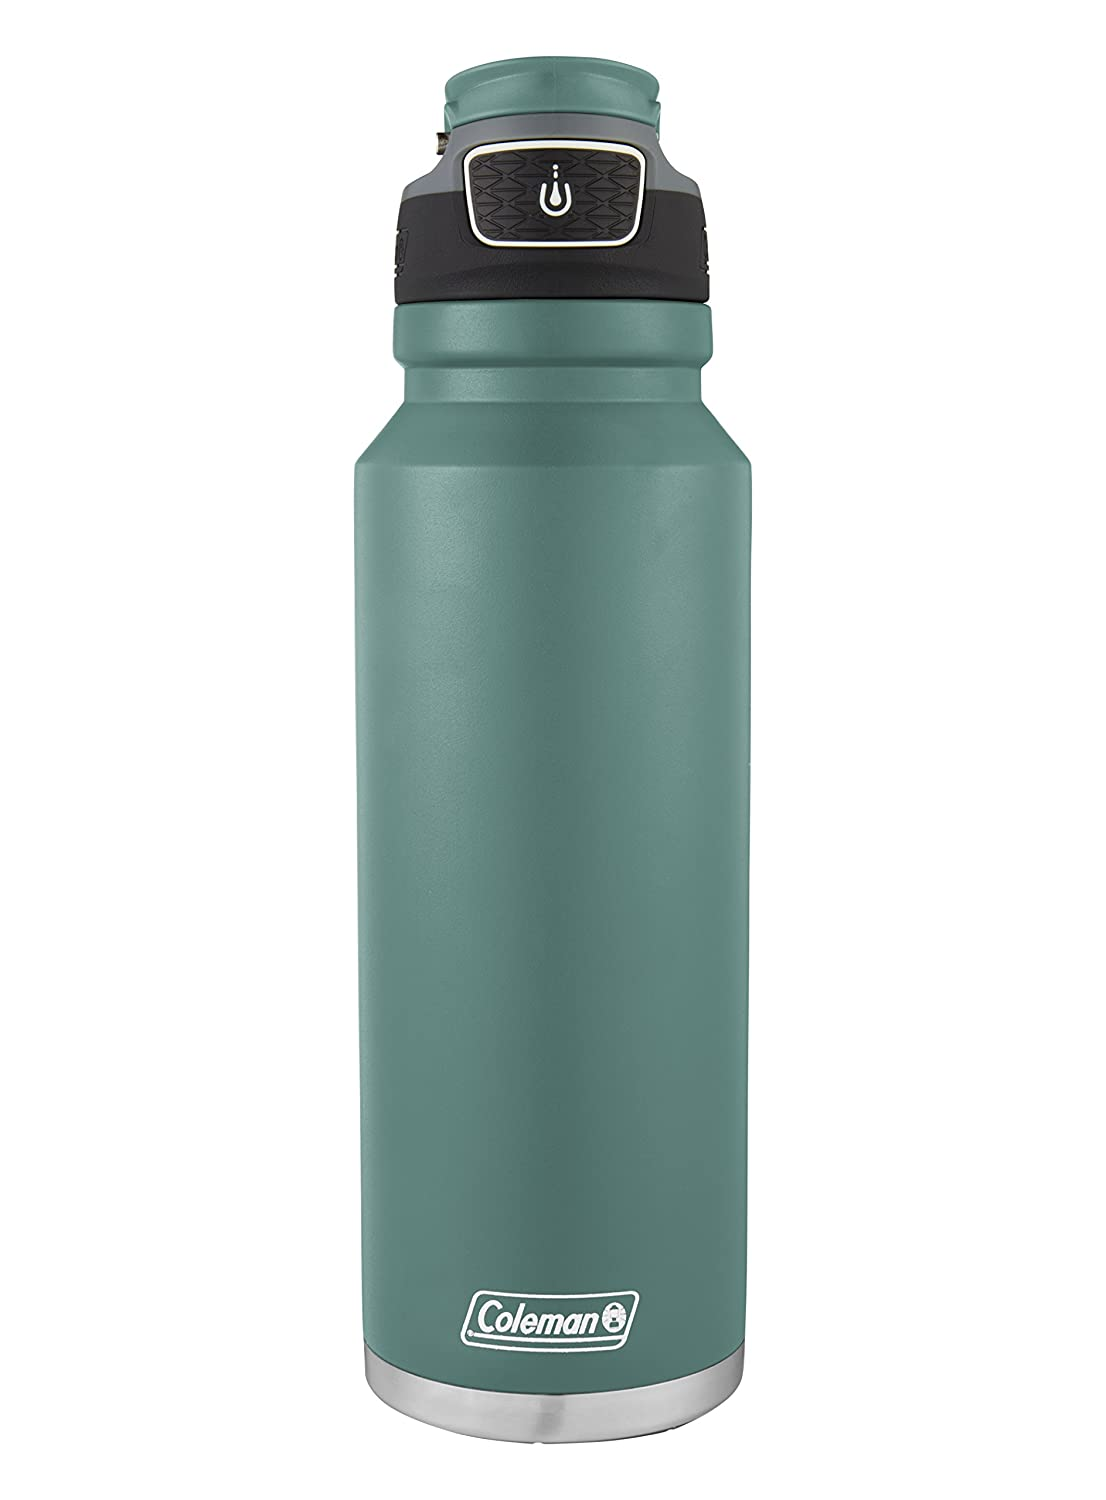 2038480 Coleman FreeFlow AUTOSEAL Insulated Stainless Steel Water Bottle Violet 40 oz The Coleman Company Inc